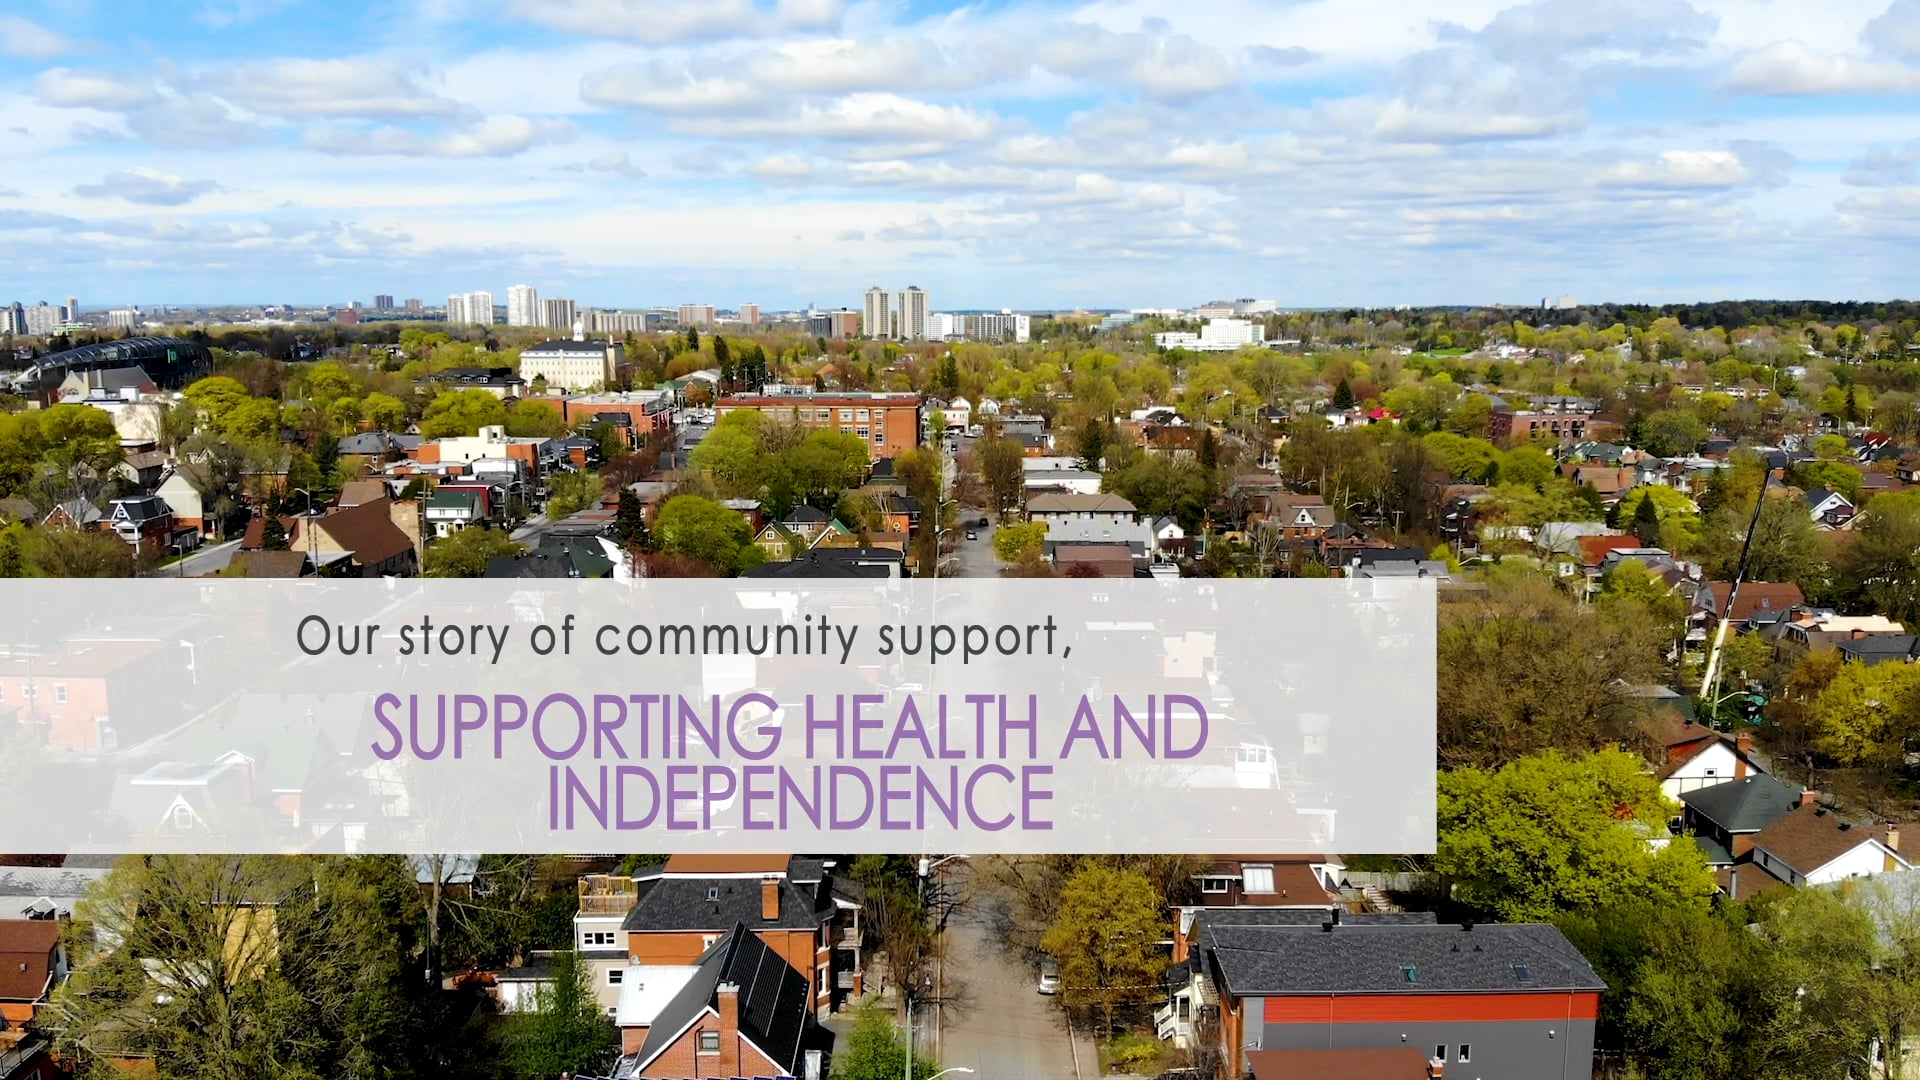 Supporting Health and Independence - My Story of Community Support